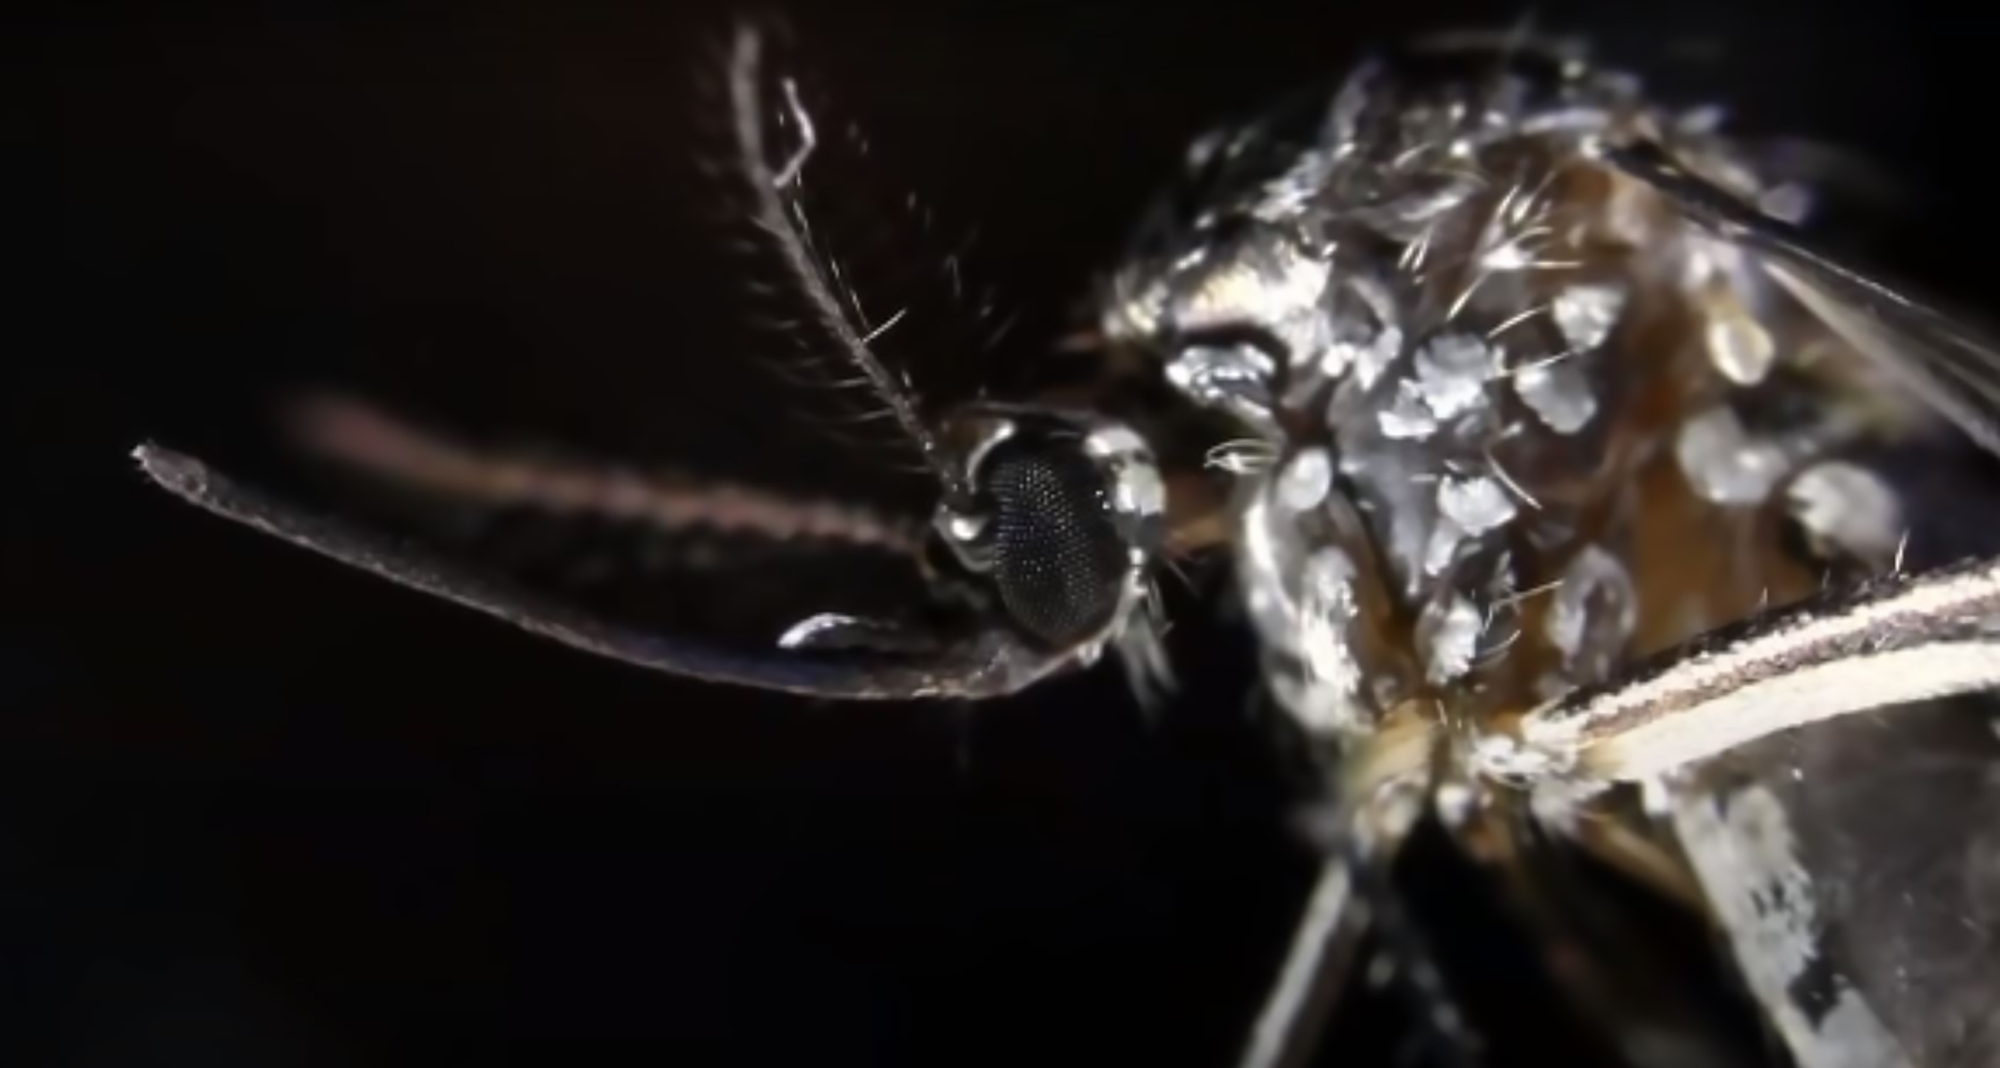 'Avoid being bitten': Virus-carrying Asian tiger mosquitoes likely reach UK